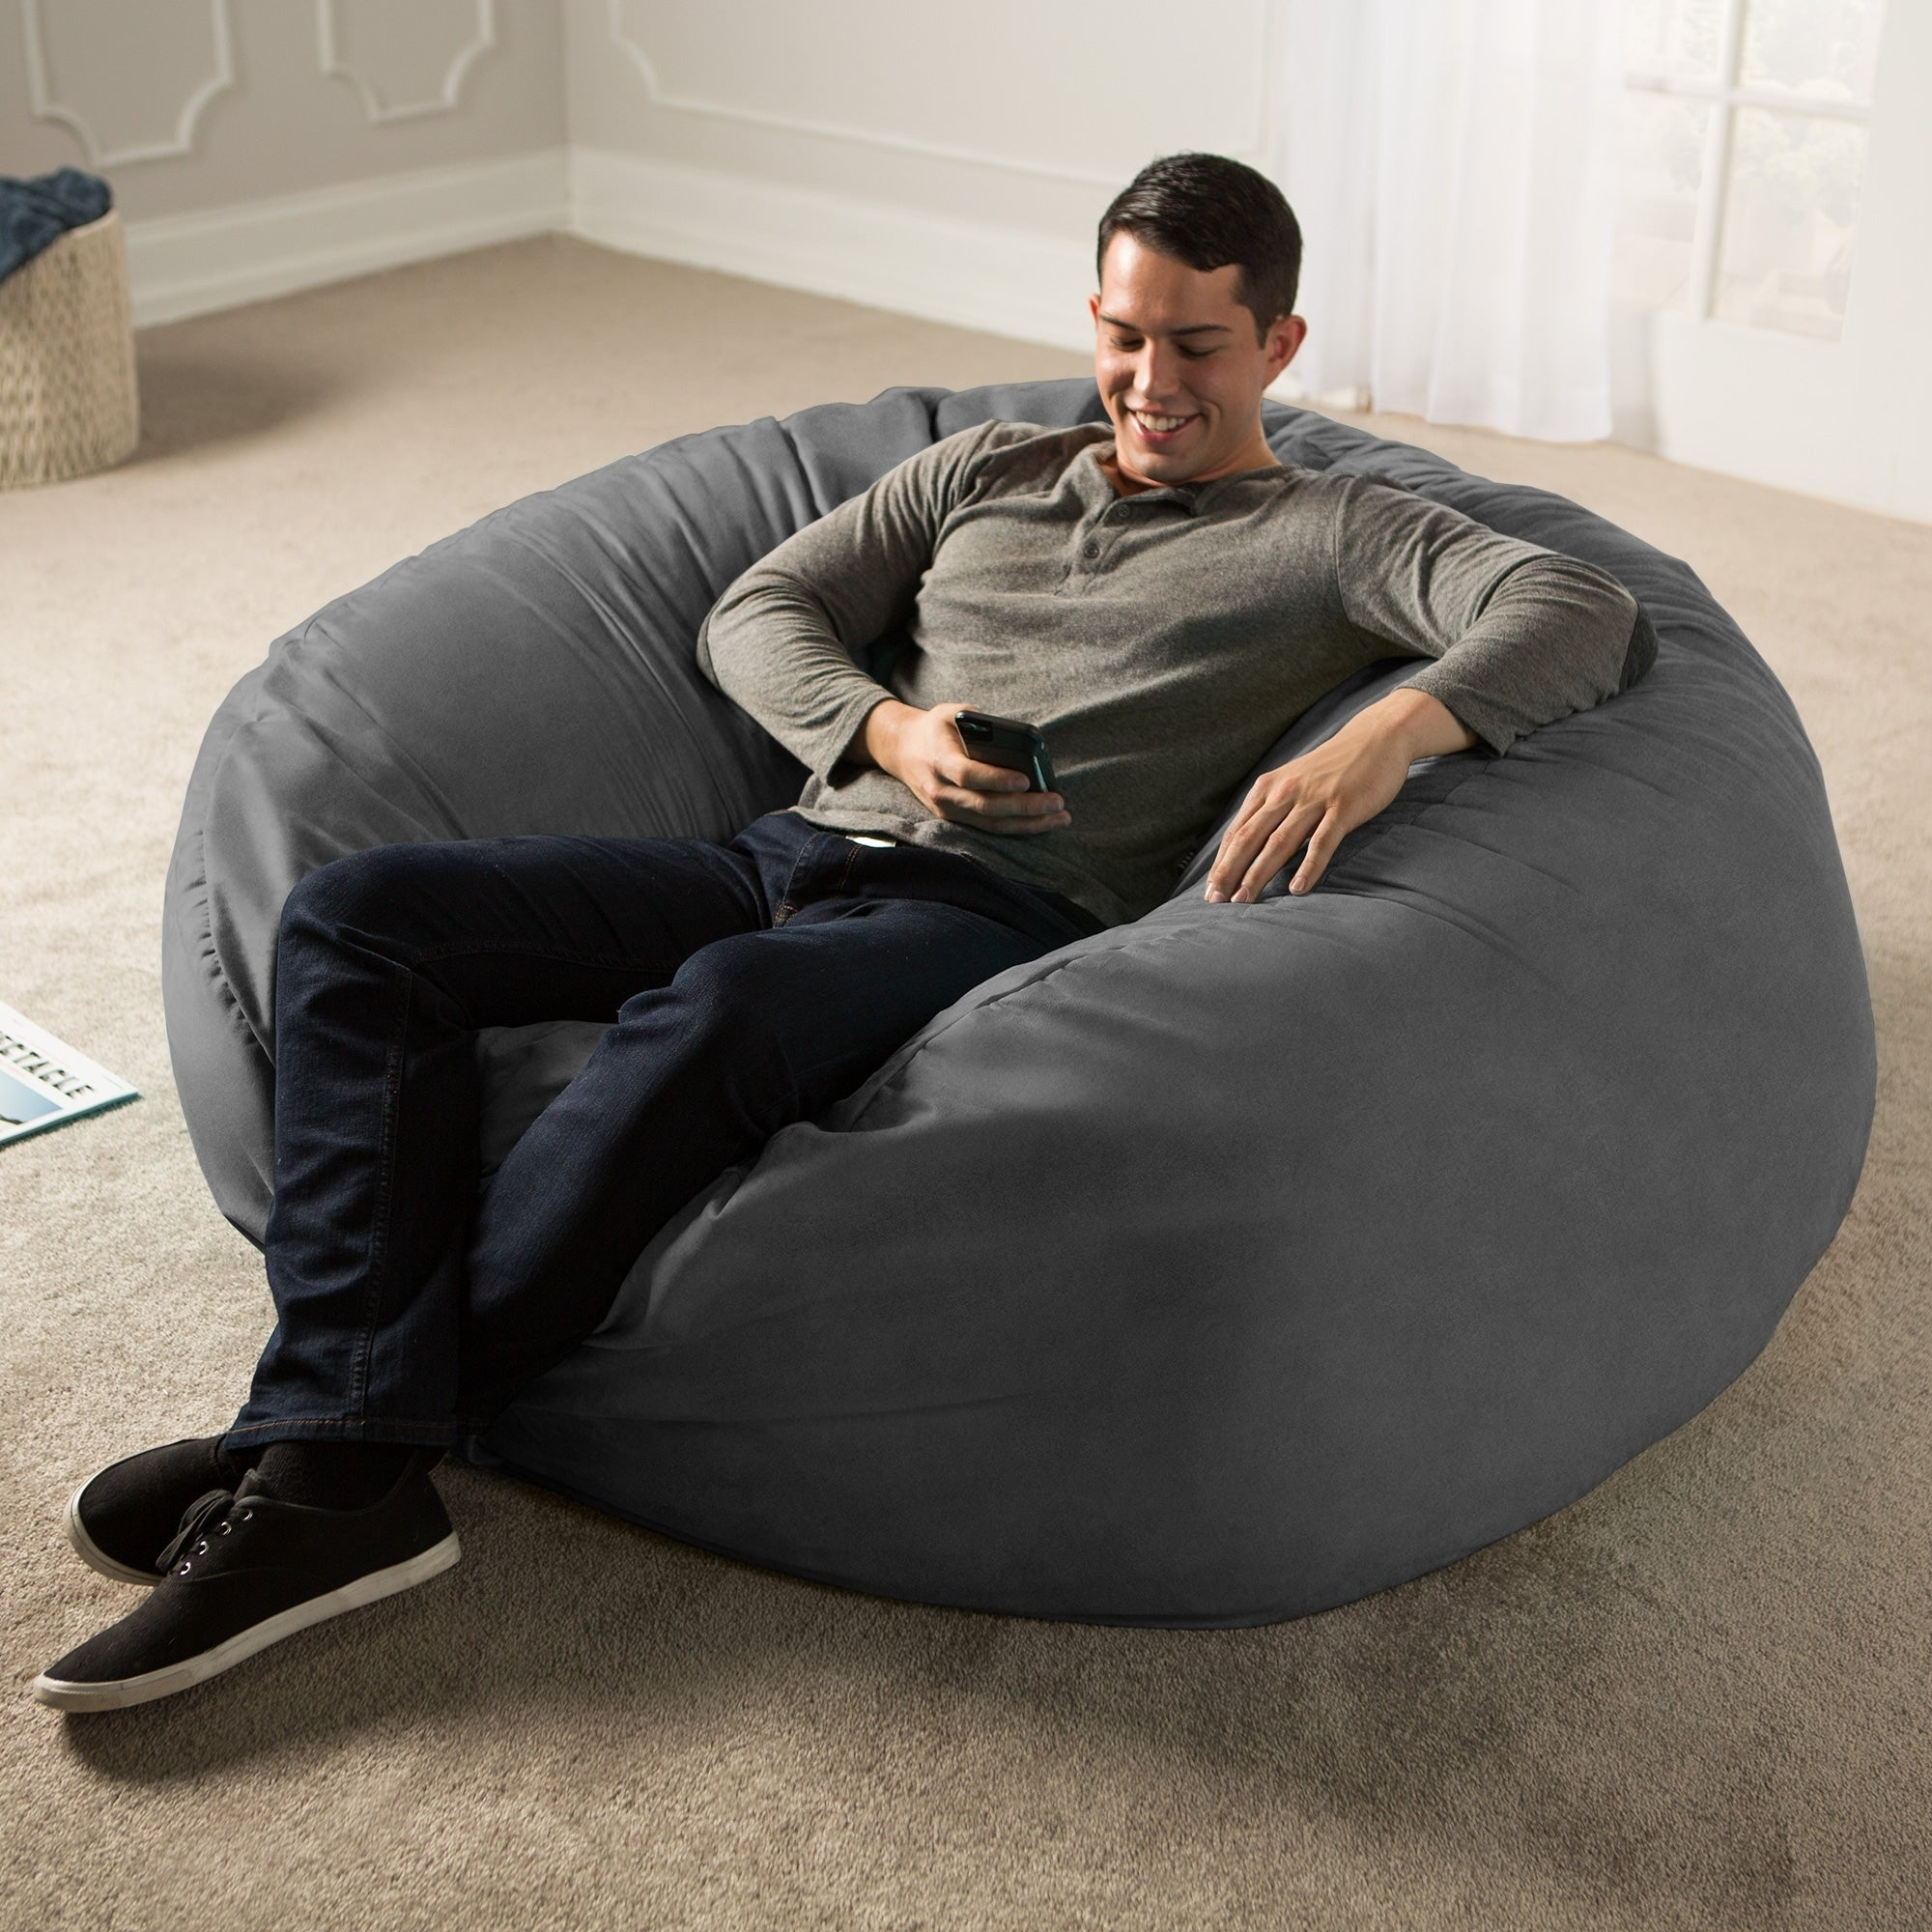 Jaxx 5 ft Giant Bean Bag Chair Free Shipping Today Overstock